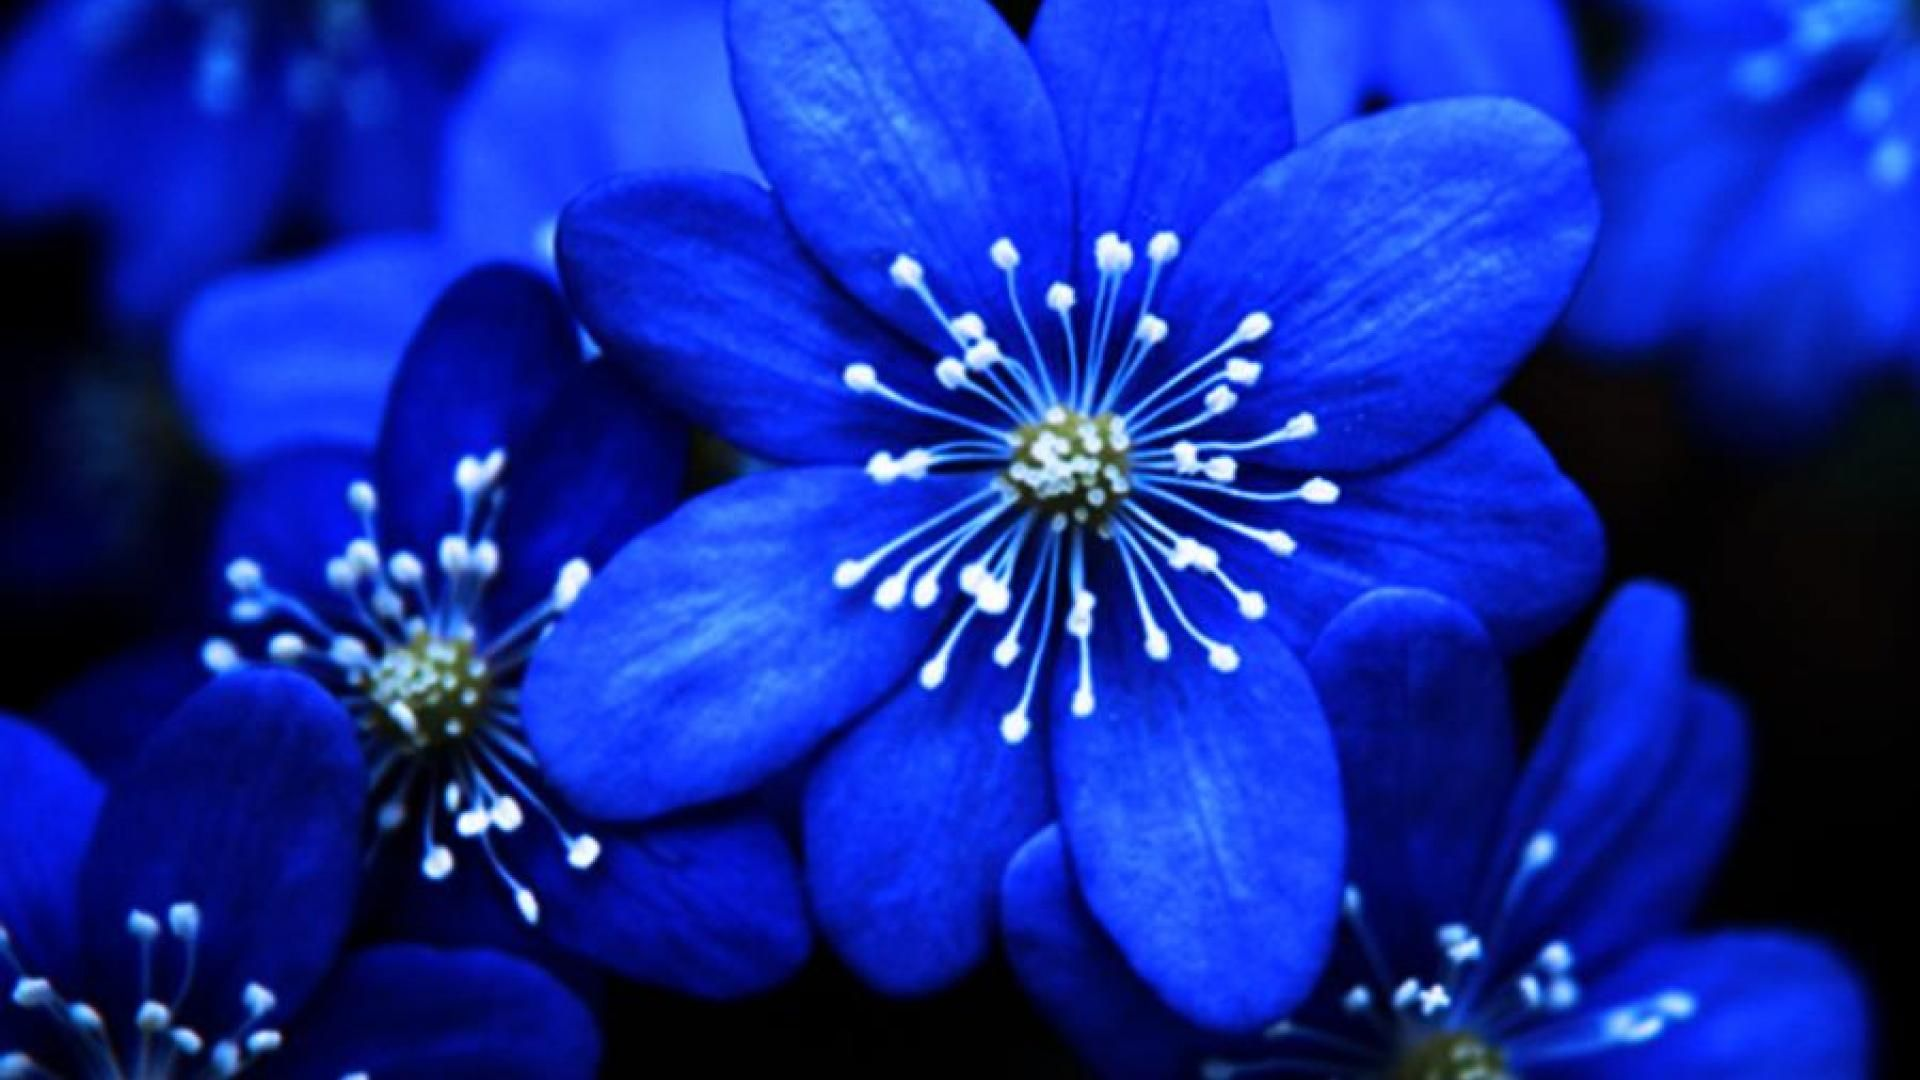 blue flowers images Google Search Blue flowers, Blue